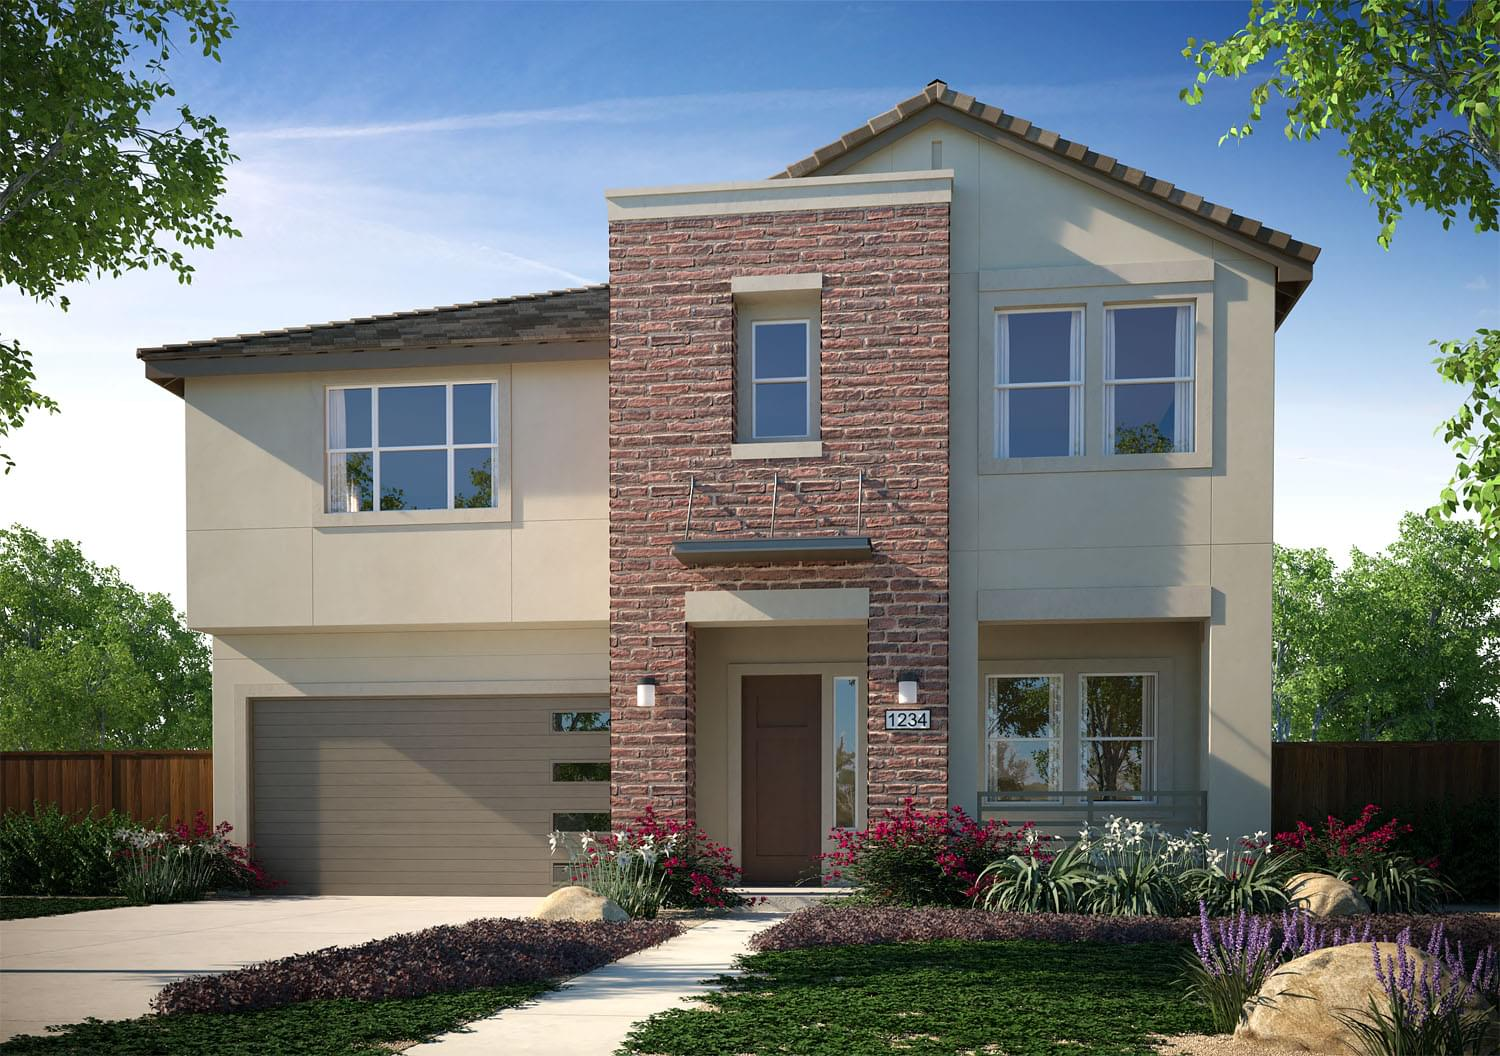 2316 Solace Street in , CA by DeNova Homes